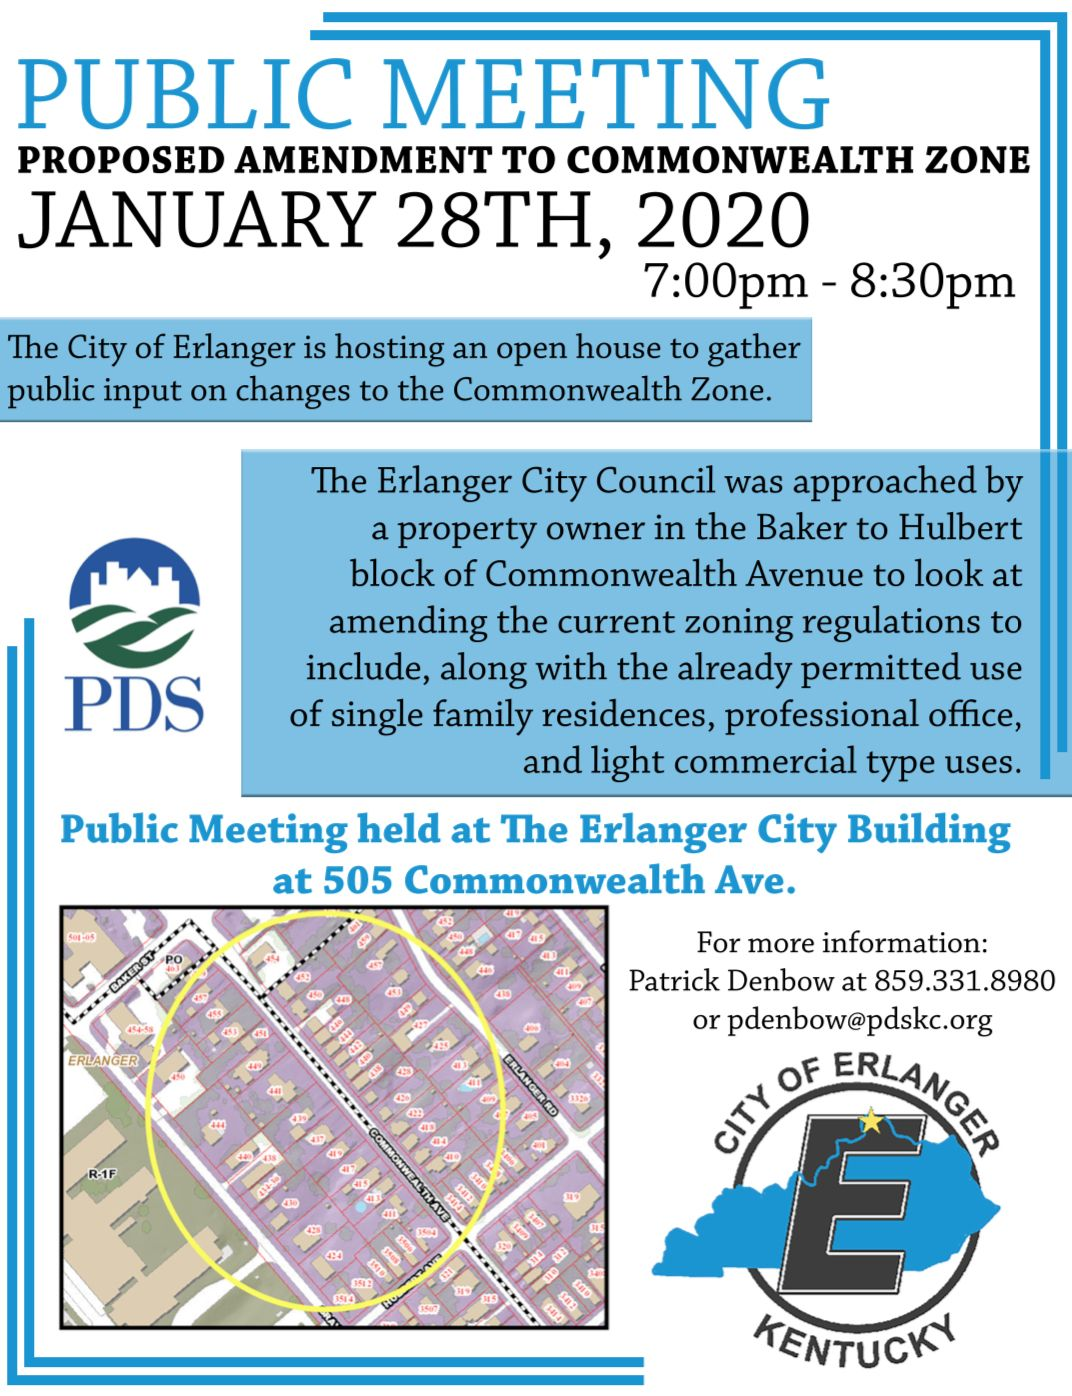 Pin by City of Erlanger, KY on City of Erlanger in 2020